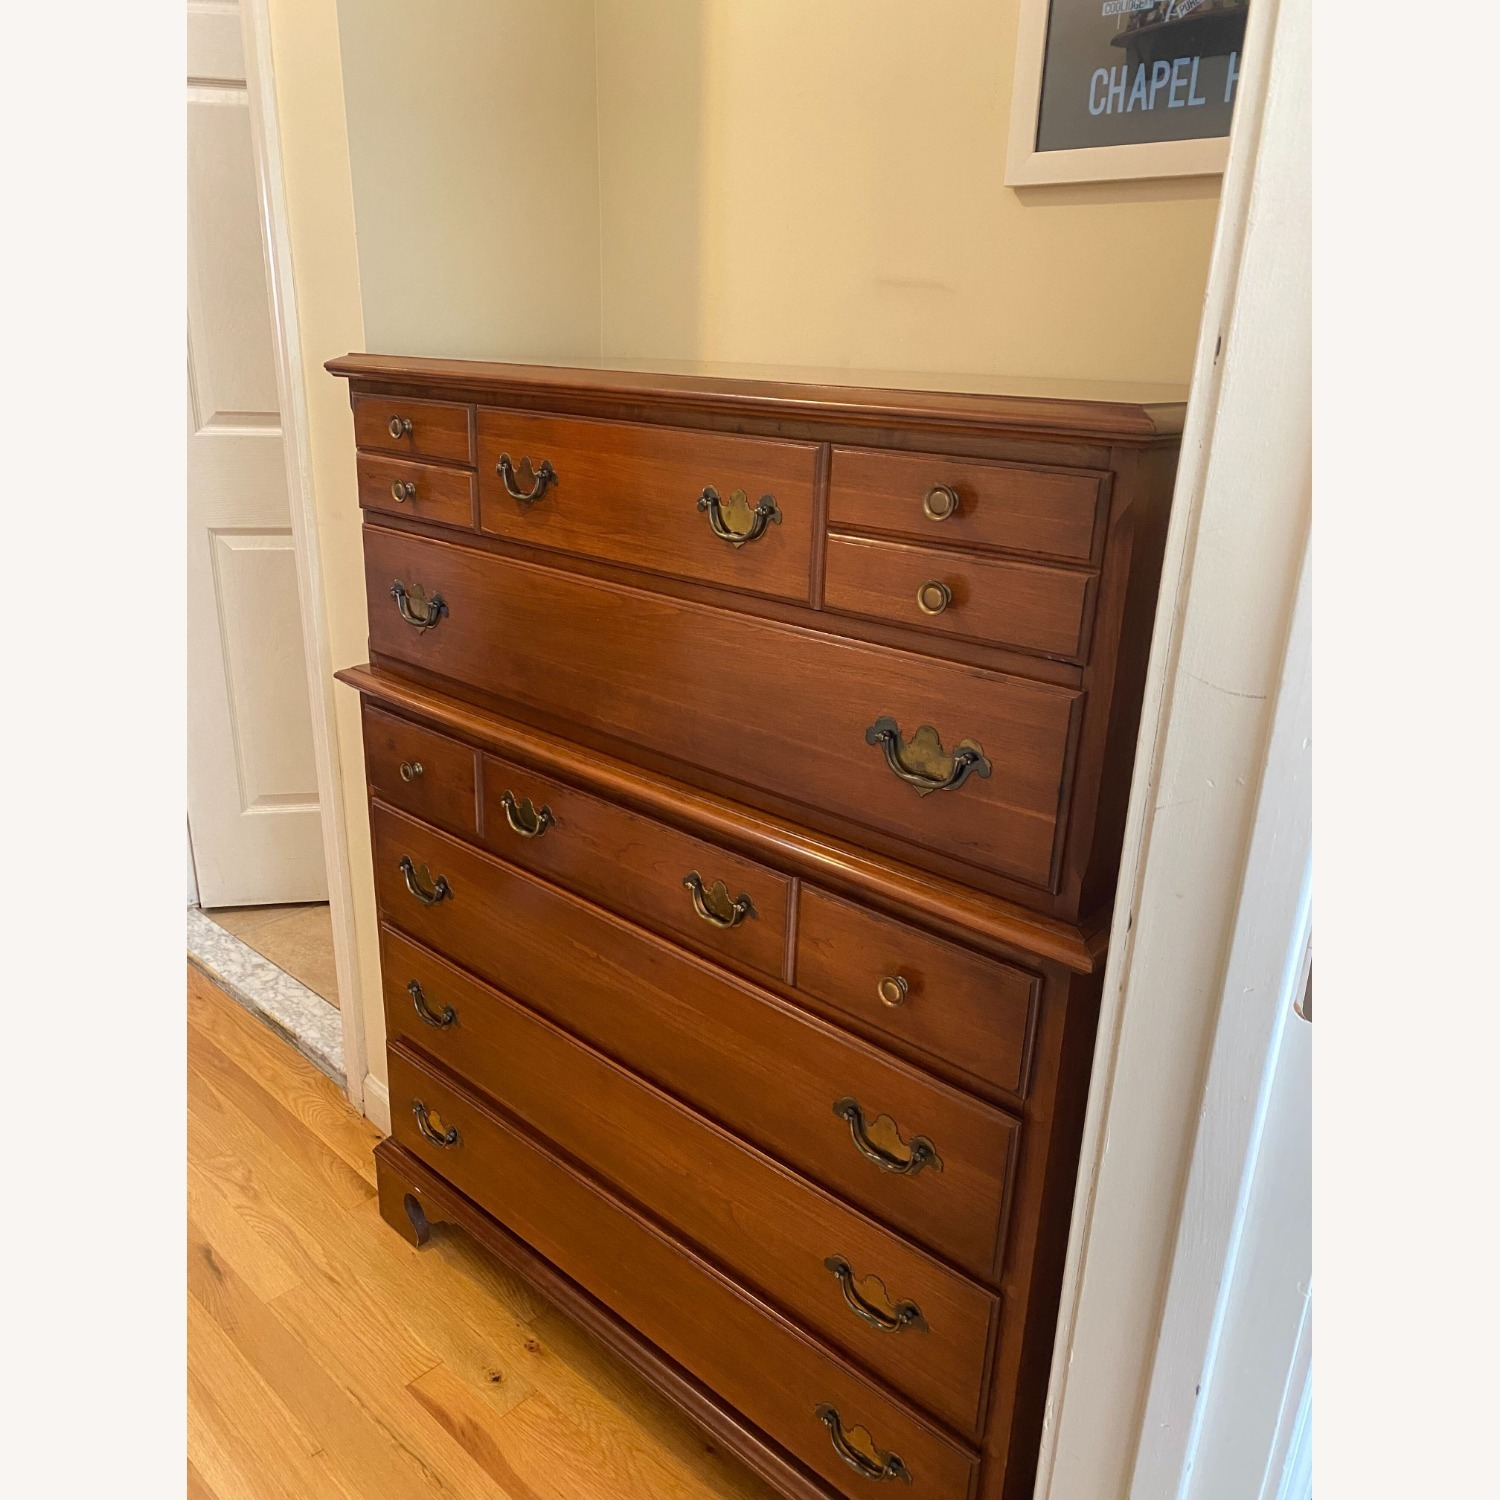 Permacraft Vintage Cherry Wood Chest/ Tall Dresser - image-1